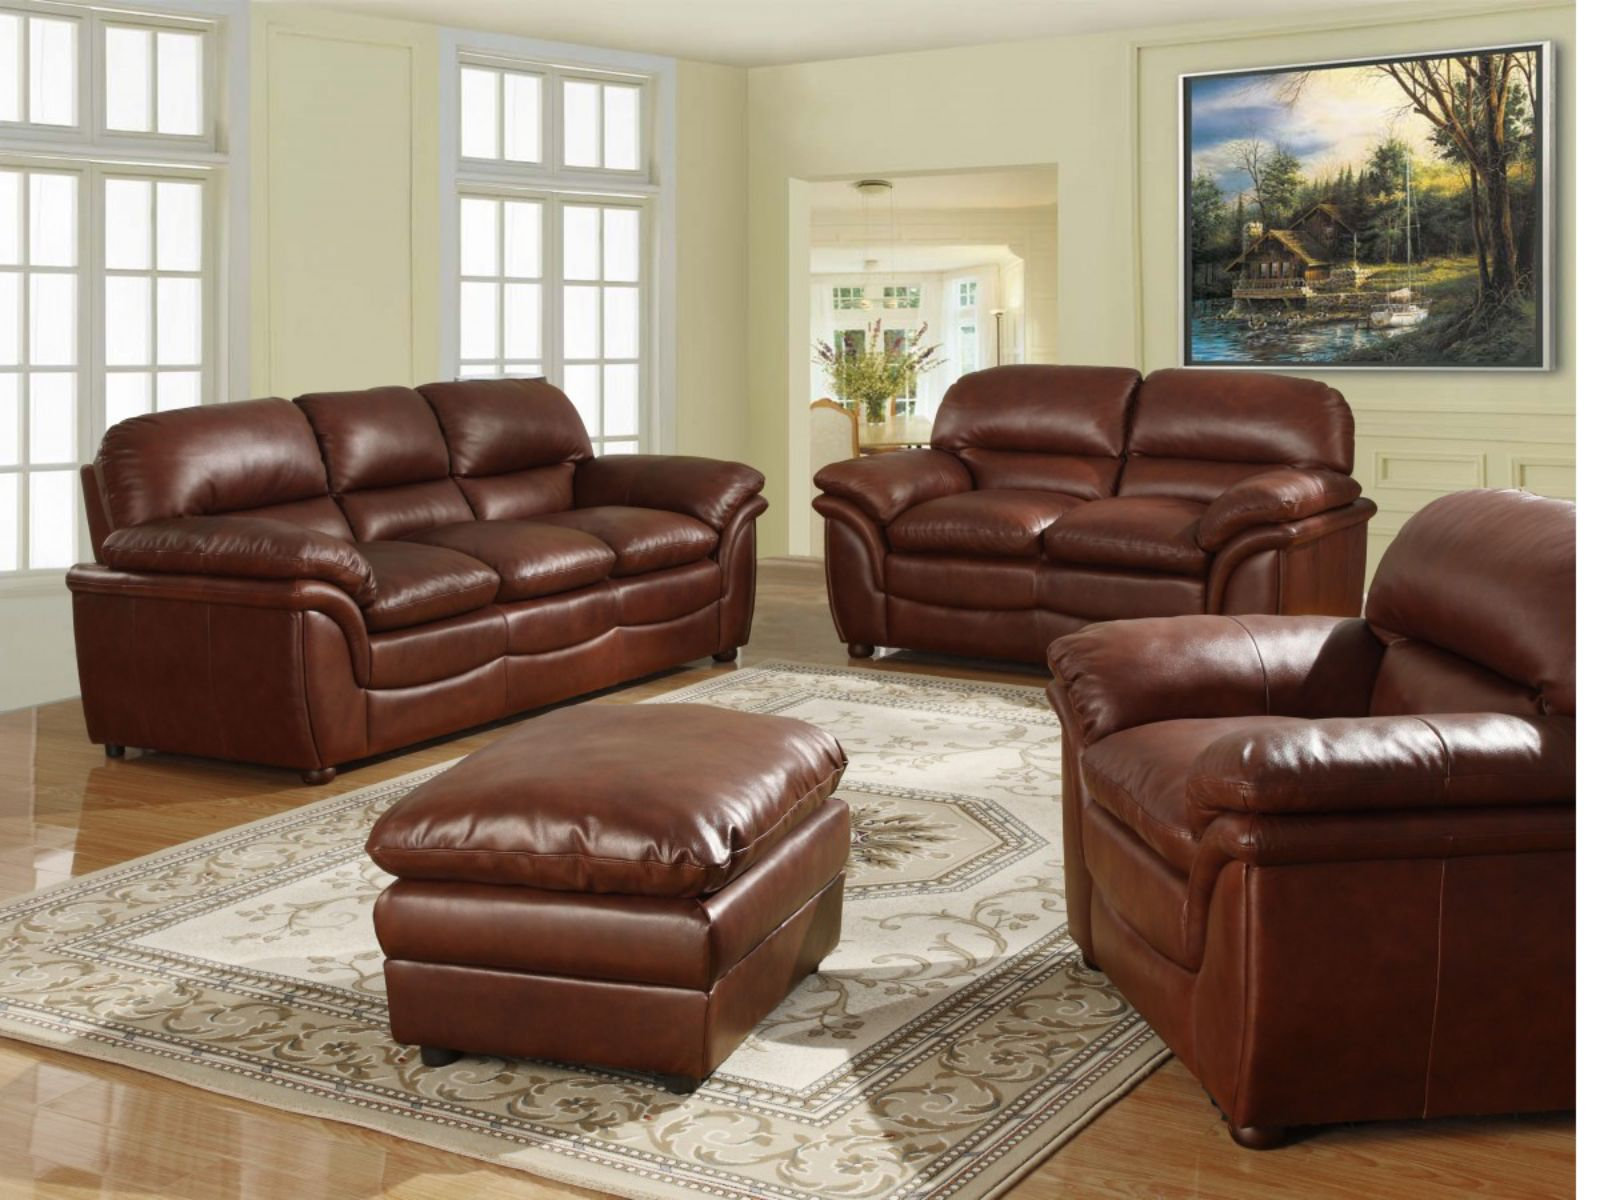 Fernando 3+1+1+Footstool Sofa Leather Suite Available In Brown Soft Leather